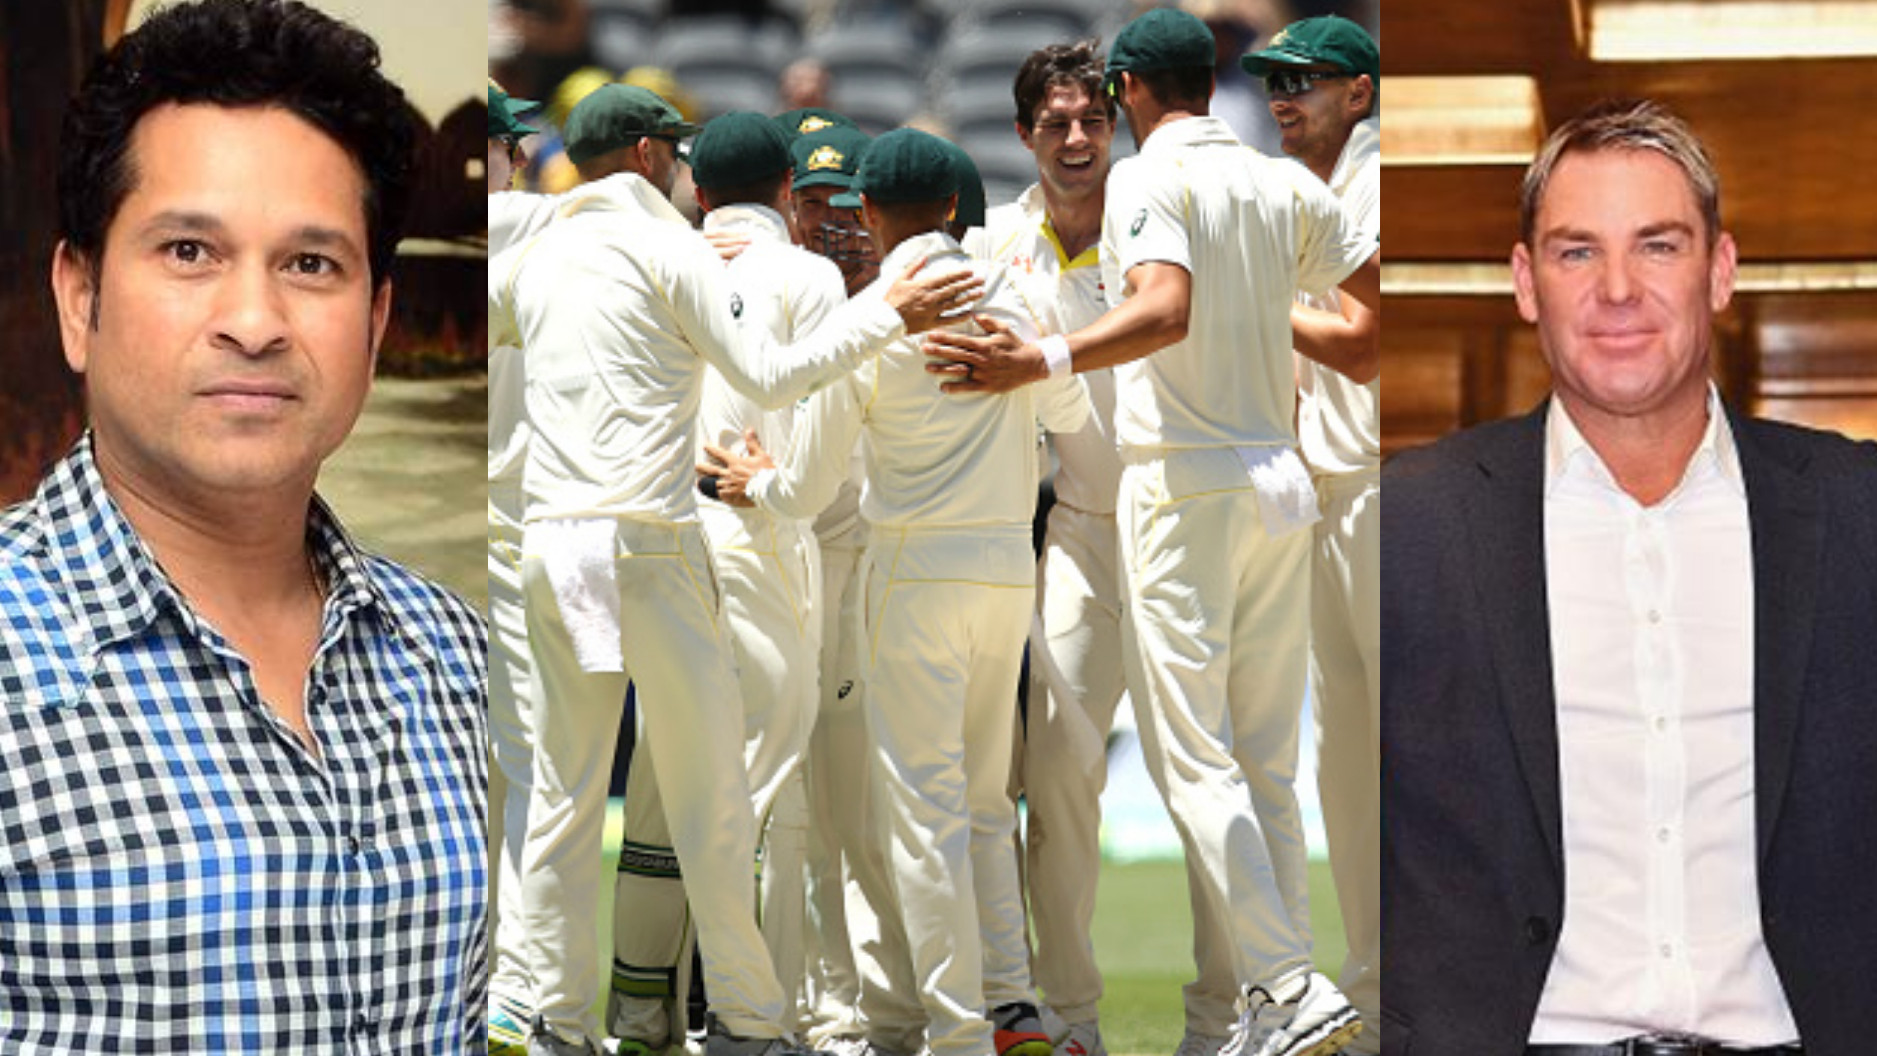 AUS v IND 2018-19: Cricket fraternity lauds Australian team, as they beat India by 146 runs in Perth